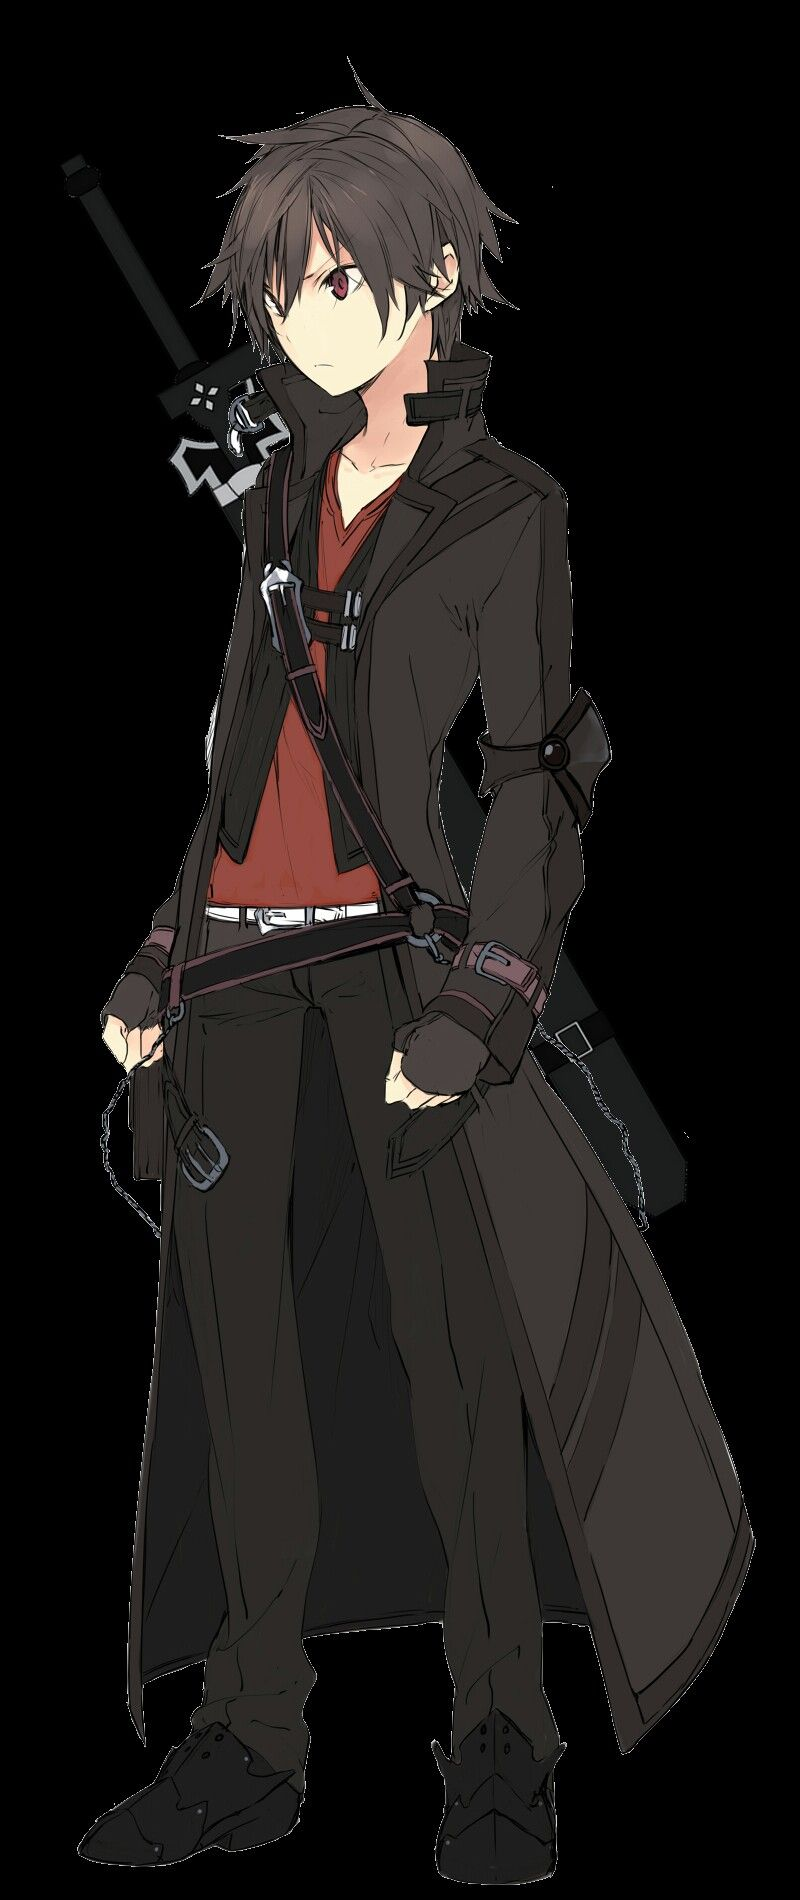 Pin by Juni Rivas on Character Design Anime characters